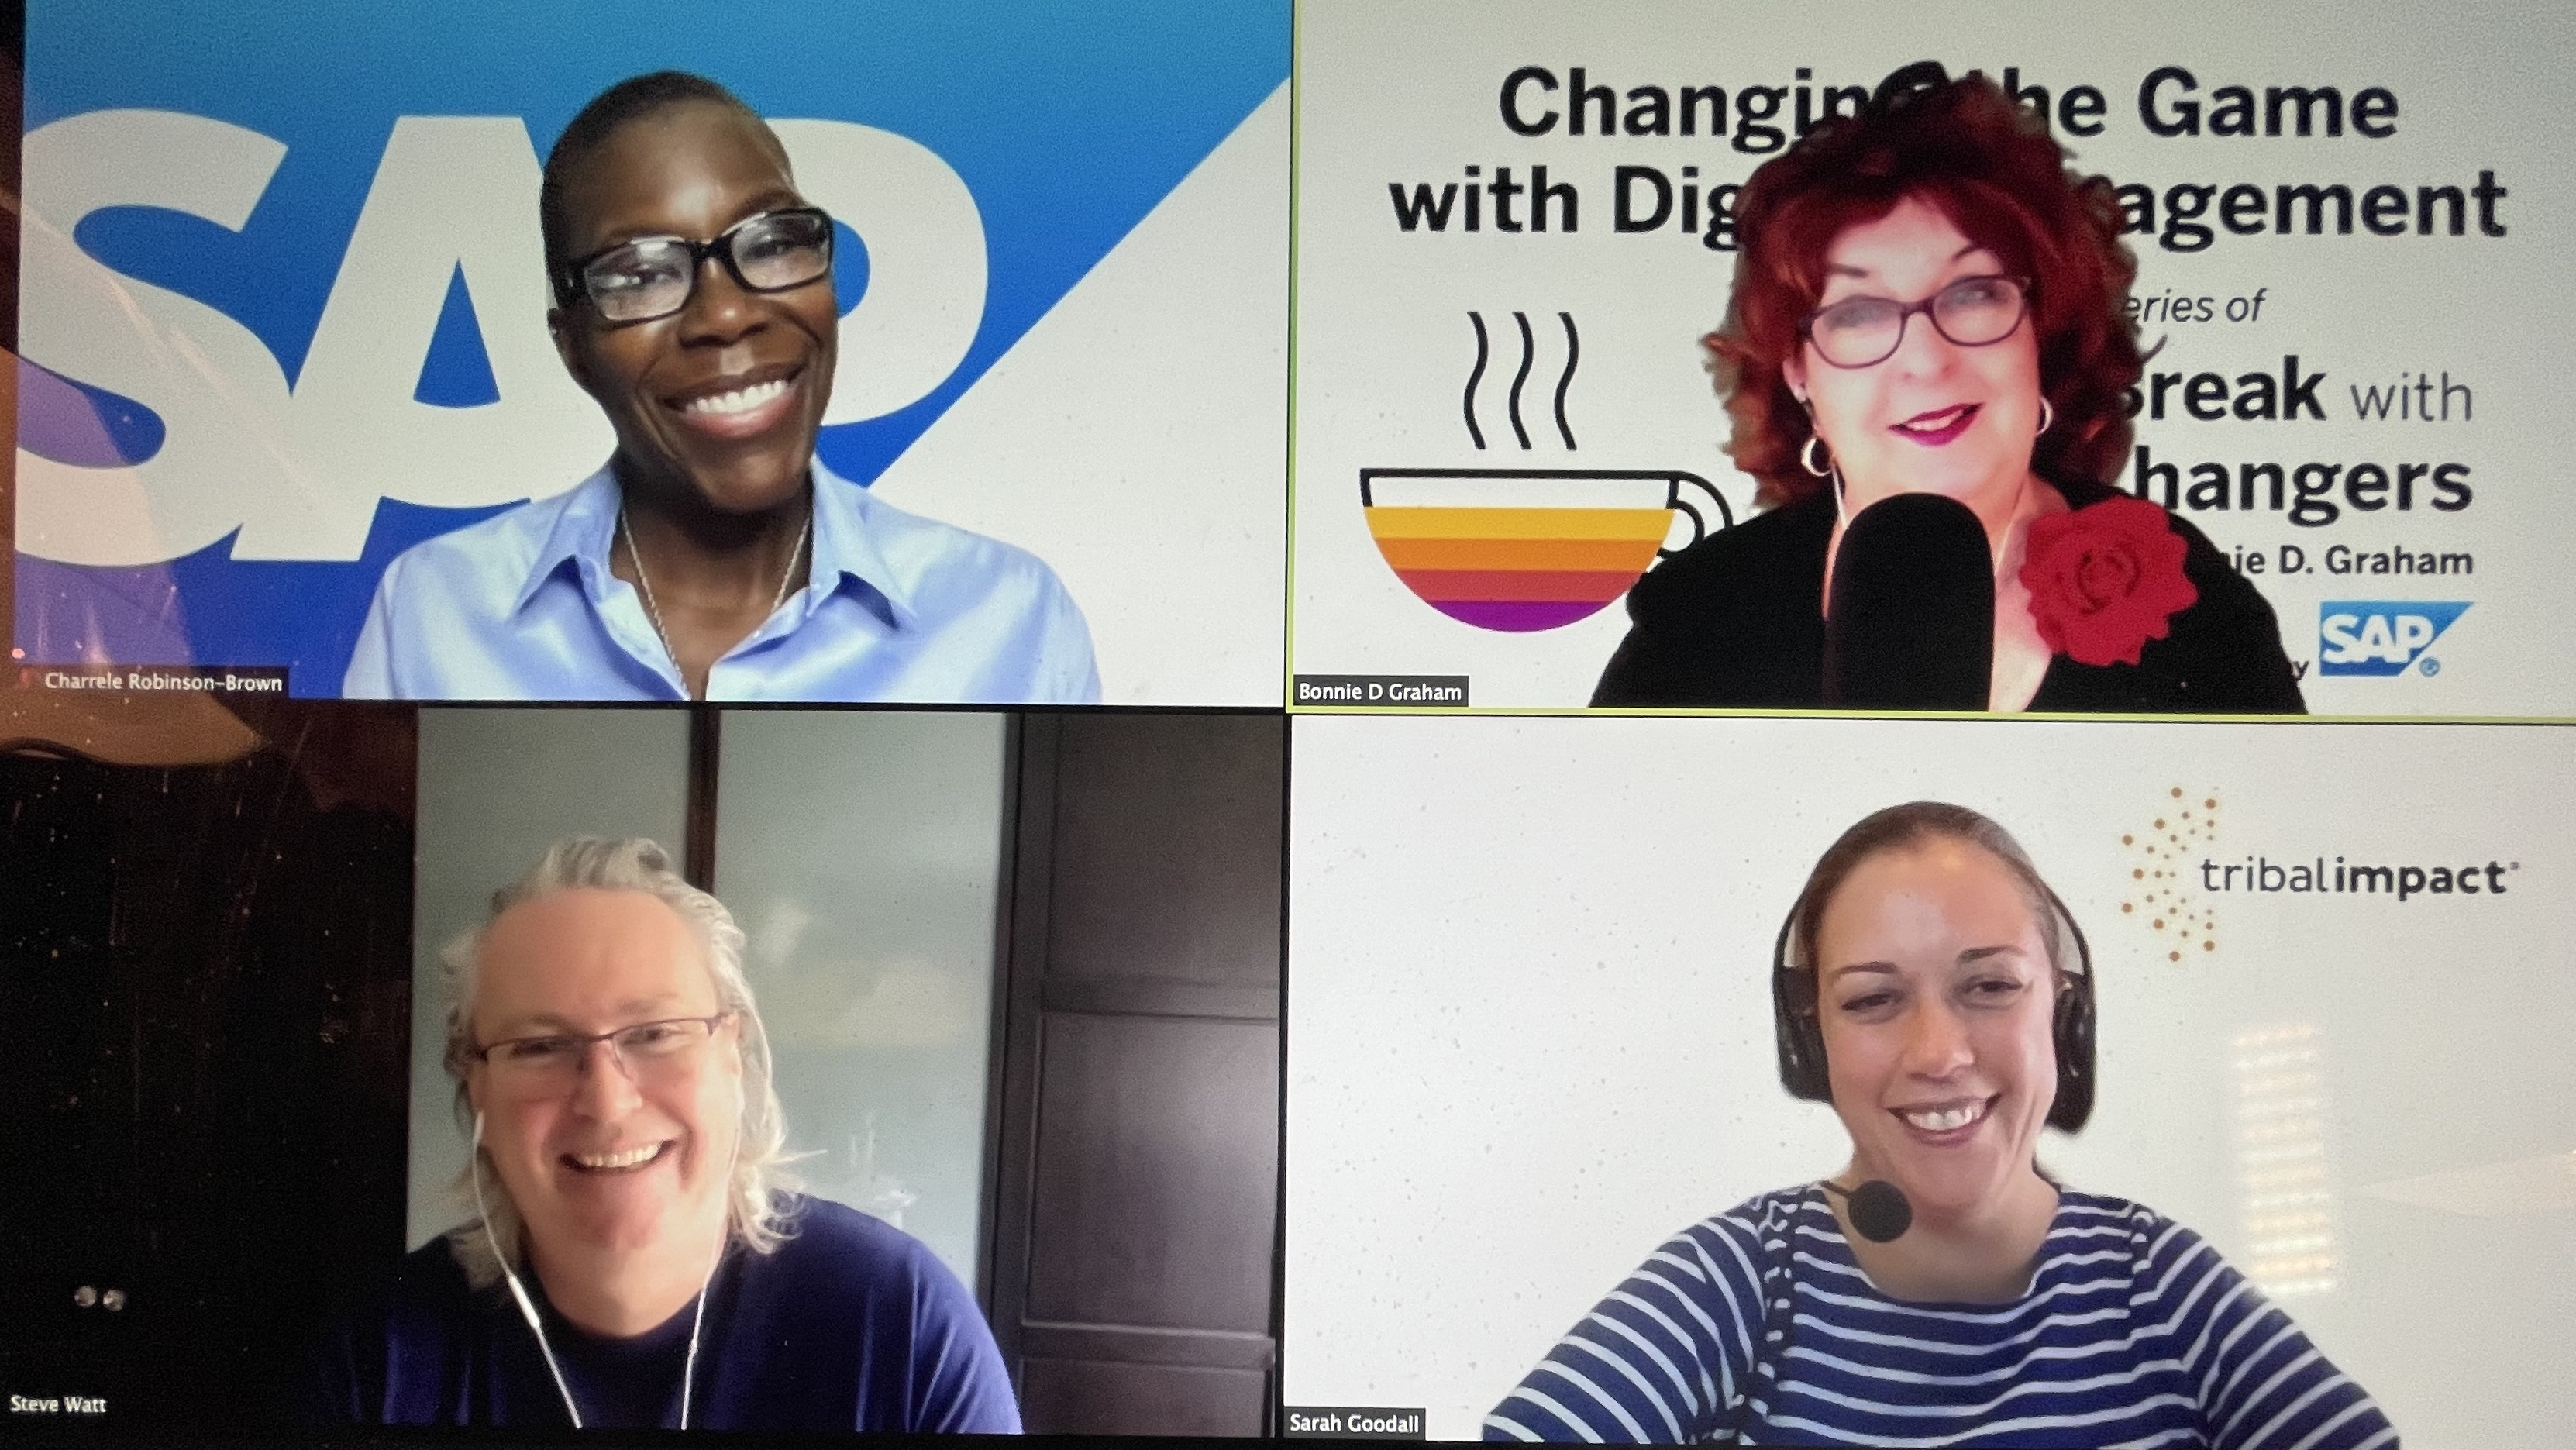 Changing the Game with Digital Engagement Radio - LIVE May 11, 2021